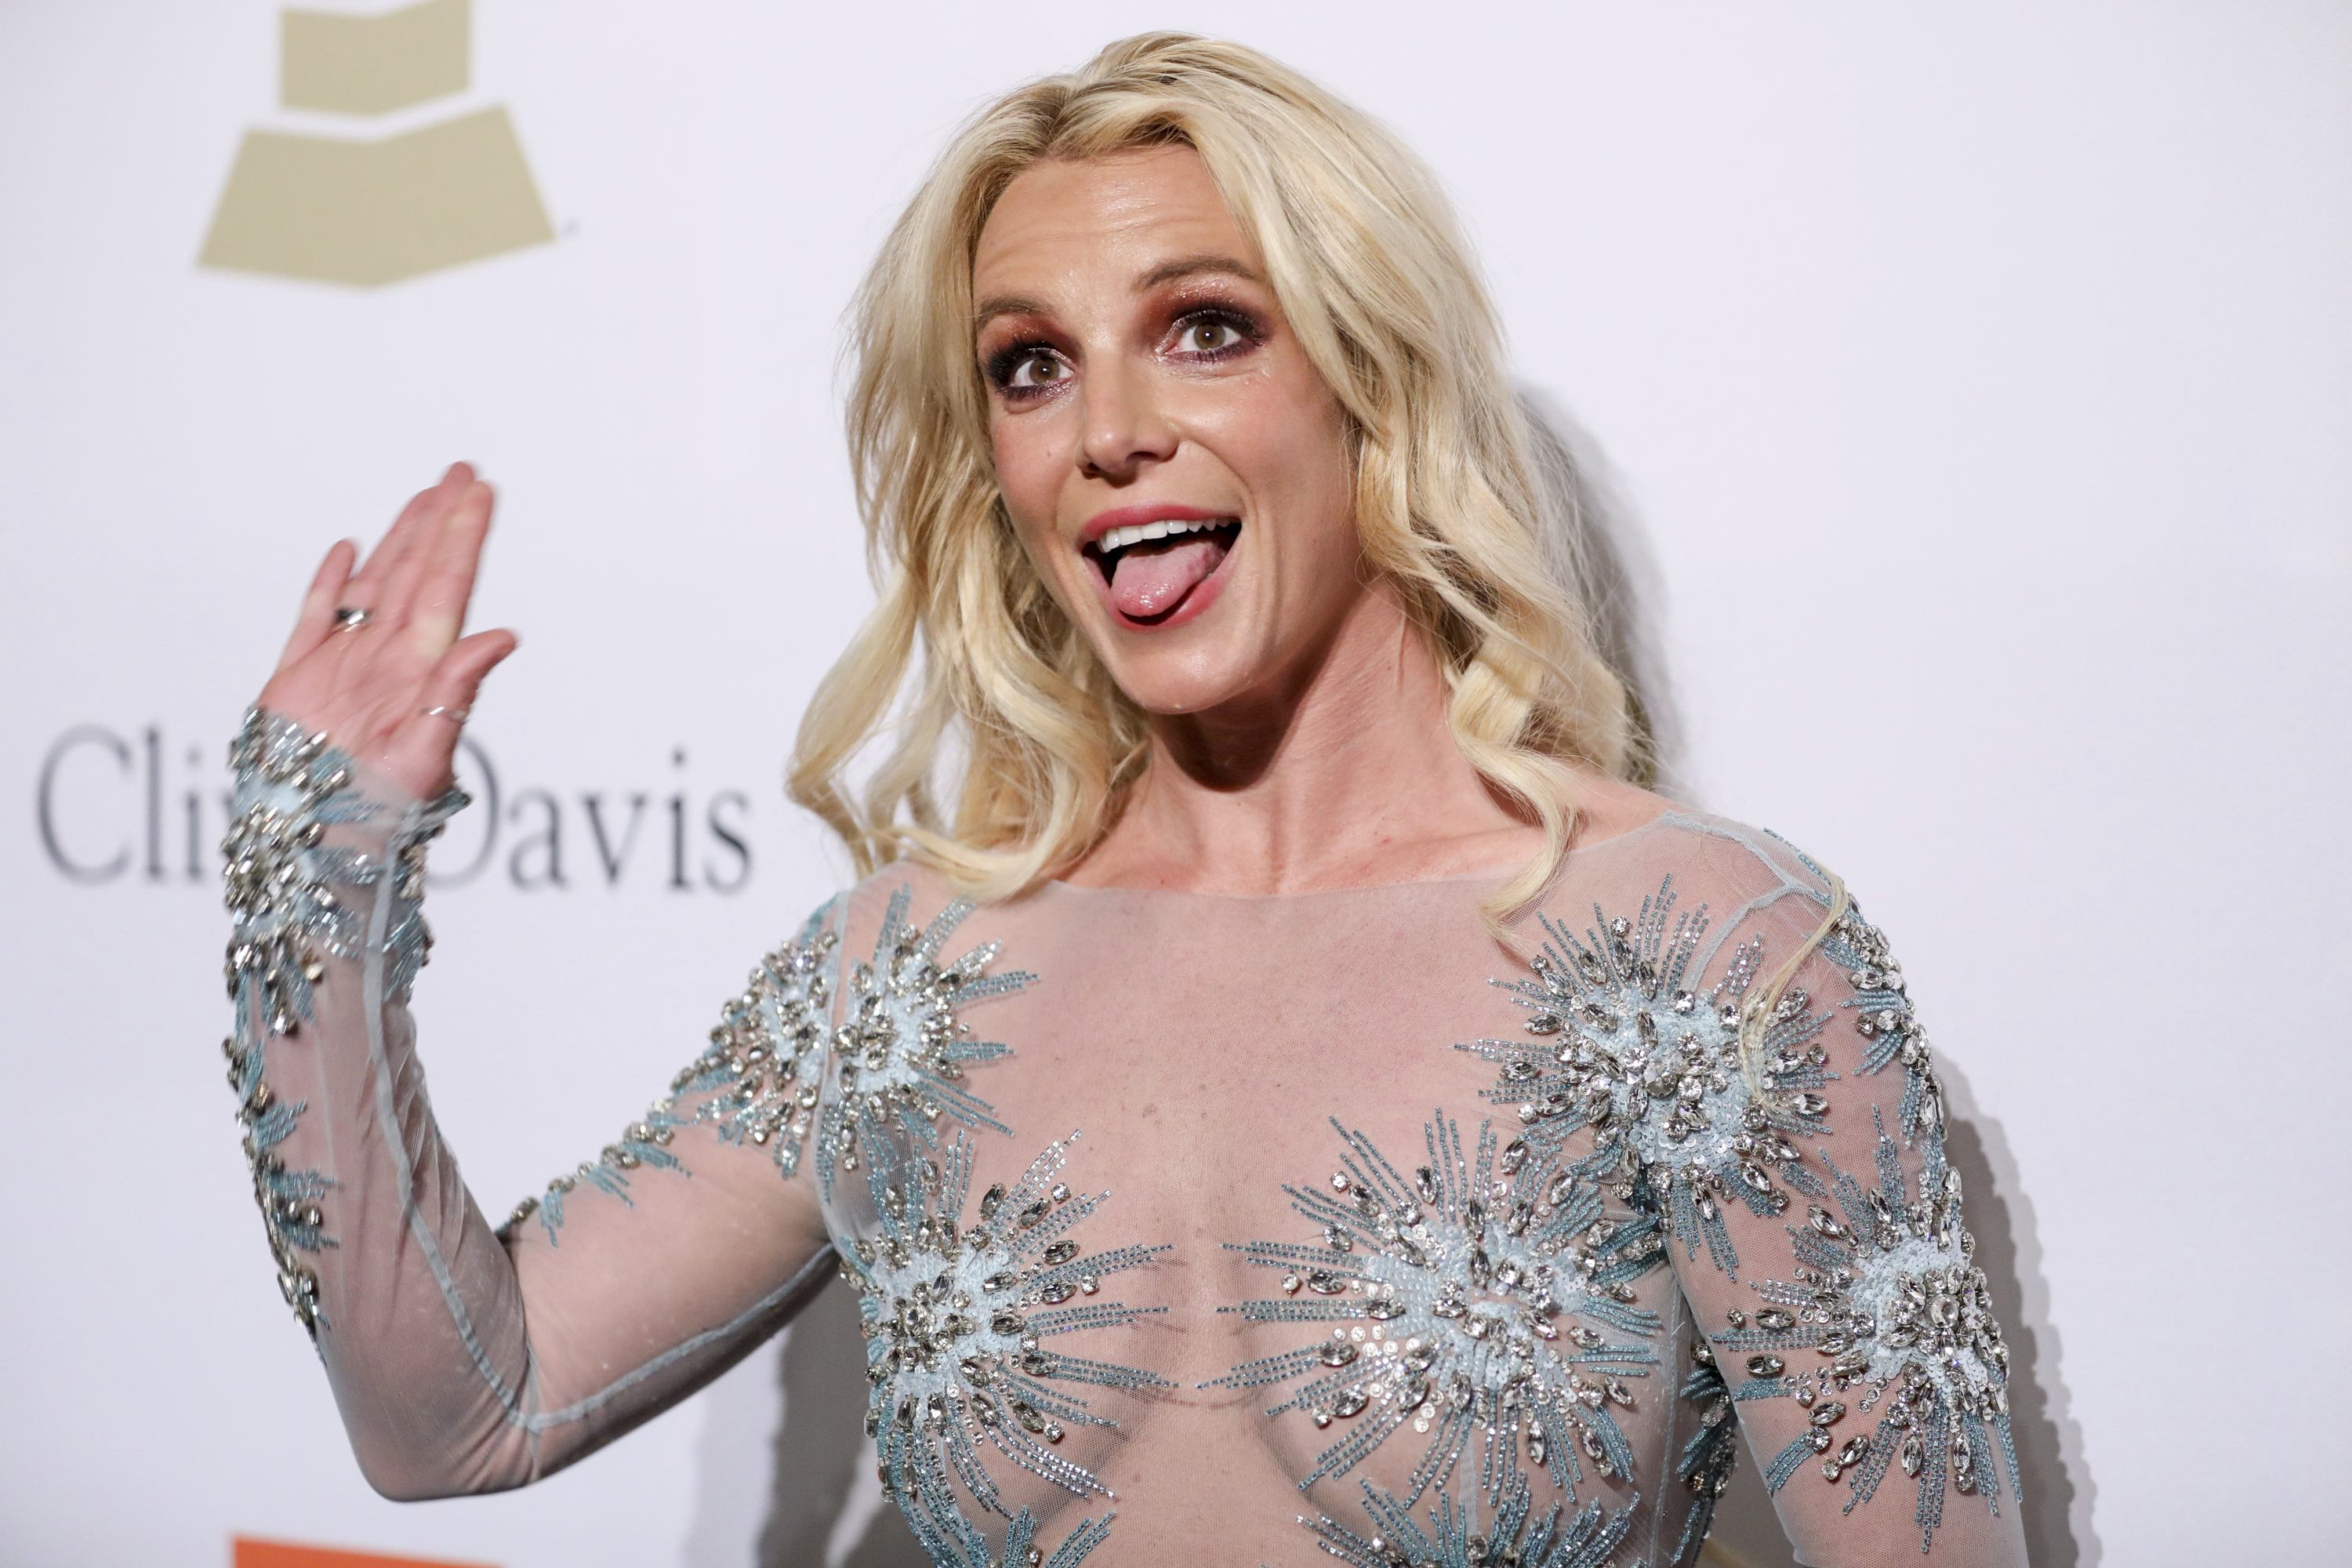 Britney Spears attends the Clive Davis and The Recording Academy Pre-Grammy Gala at The Beverly Hilton Hotel on Saturday, February 11, 2017, in Beverly Hills, Calif. (Photo by Rich Fury/Invision/AP)